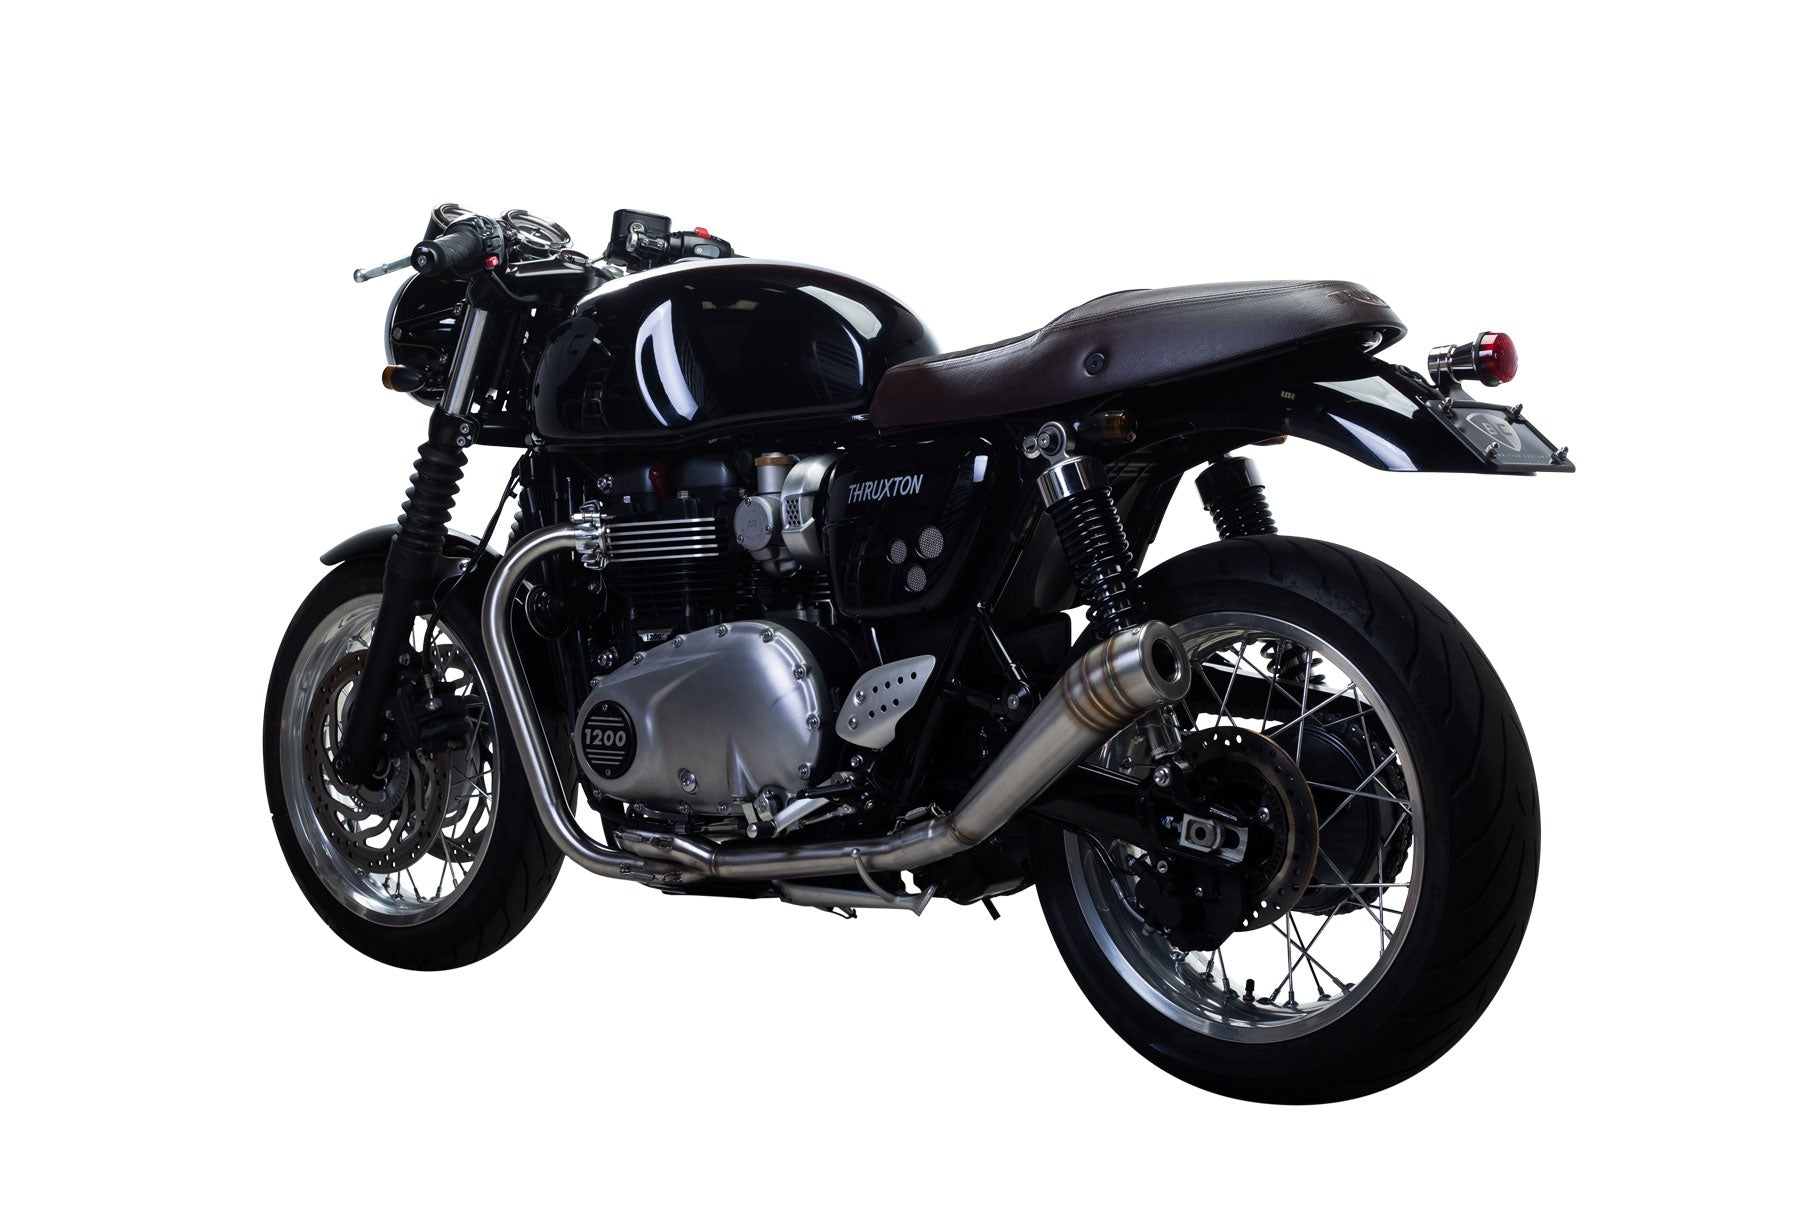 British Customs Triumph Thruxton 1200 Best Sounding Exhaust